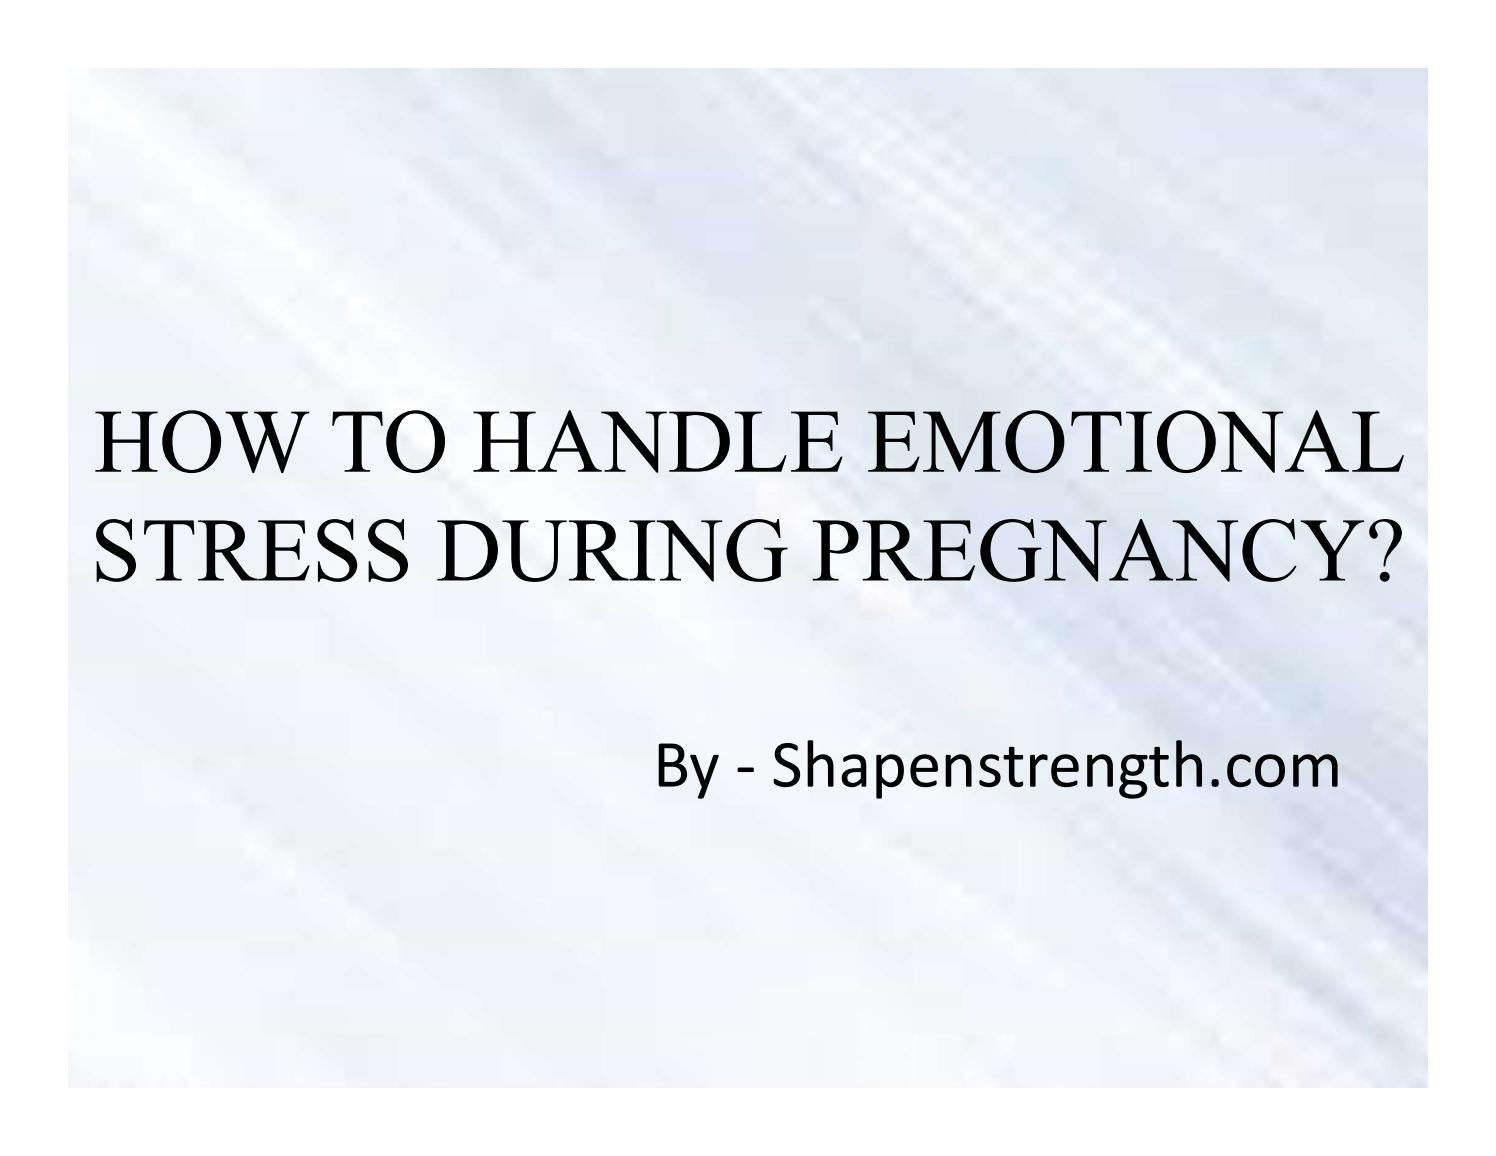 5 Ways to Cope-up With Emotional Stress During Pregnancy by raoa96053 -  issuu